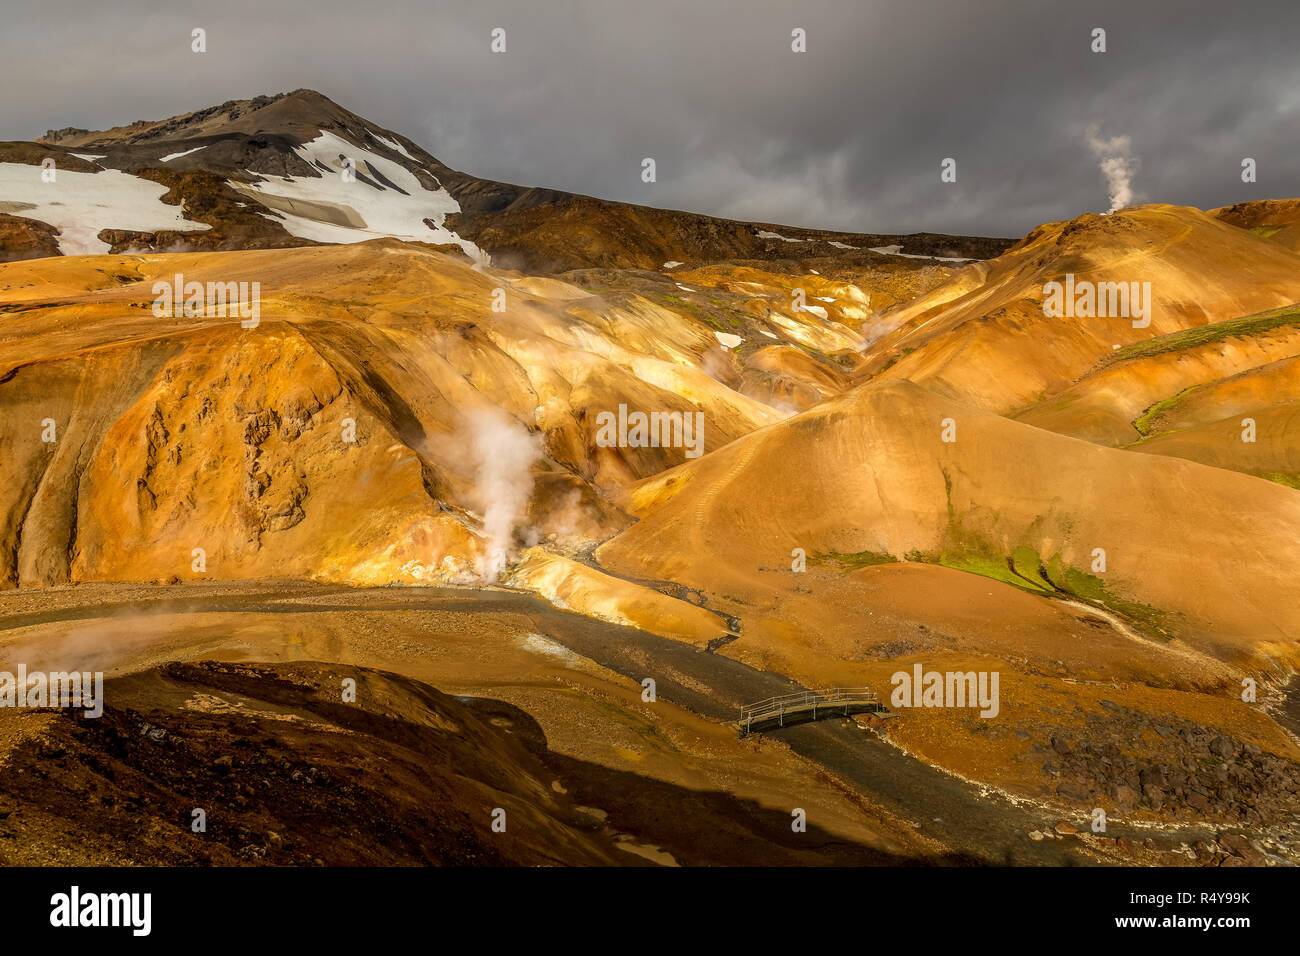 The rock formations and volcanic thermal fissures in the Jokulgil Canyon area of Iceland. - Stock Image